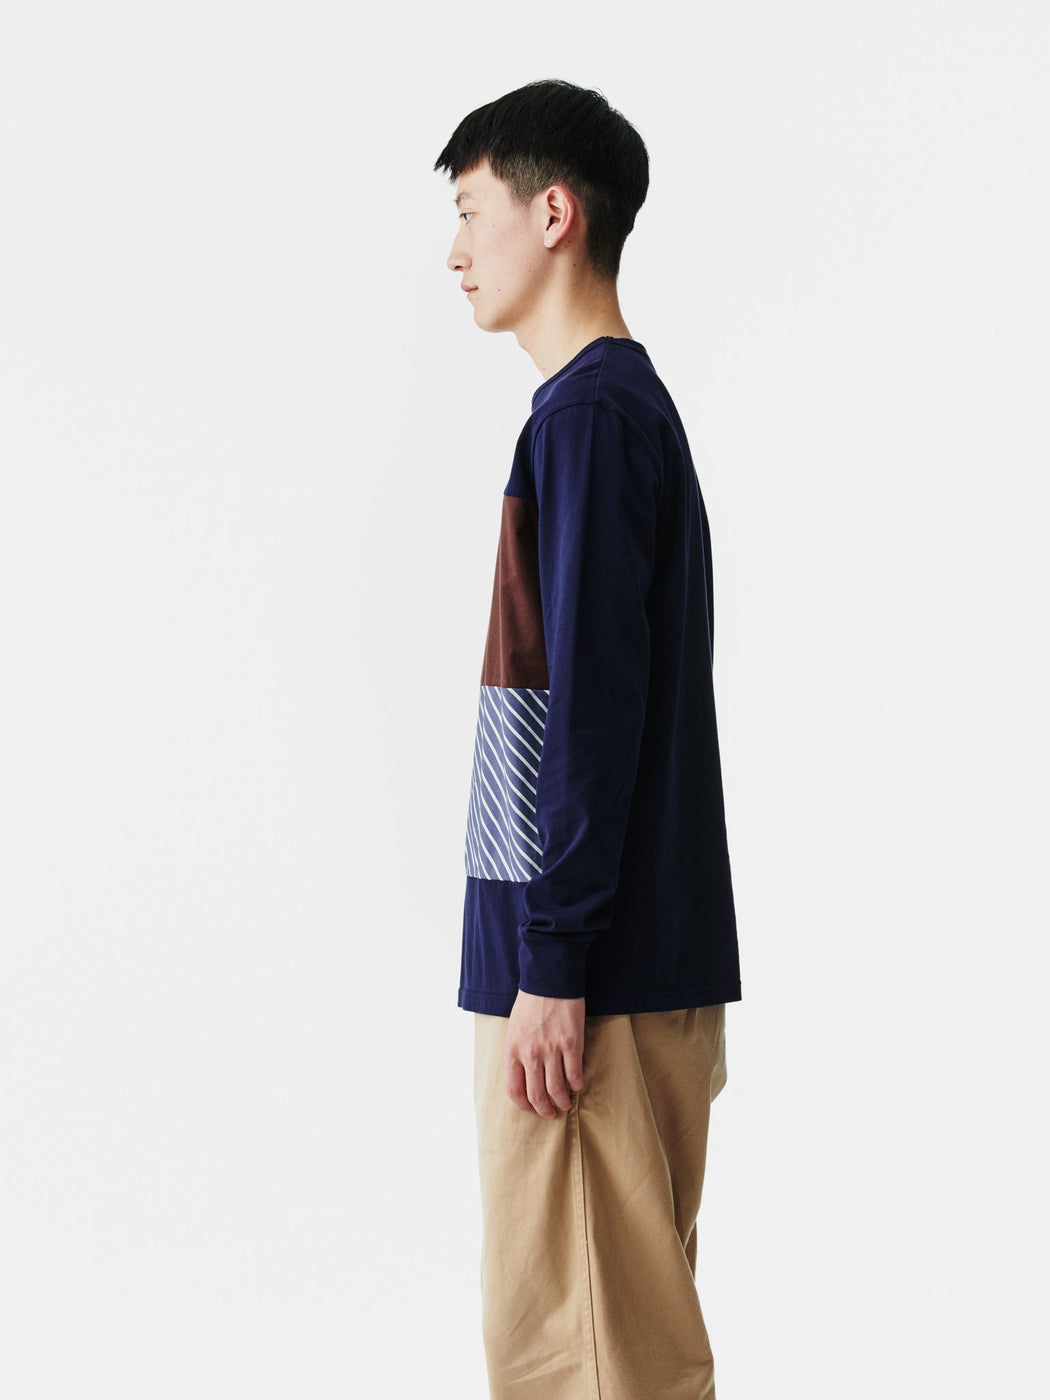 ALOYE Shirt Fabrics Long Sleeve T-shirt Navy-Navy Stripe